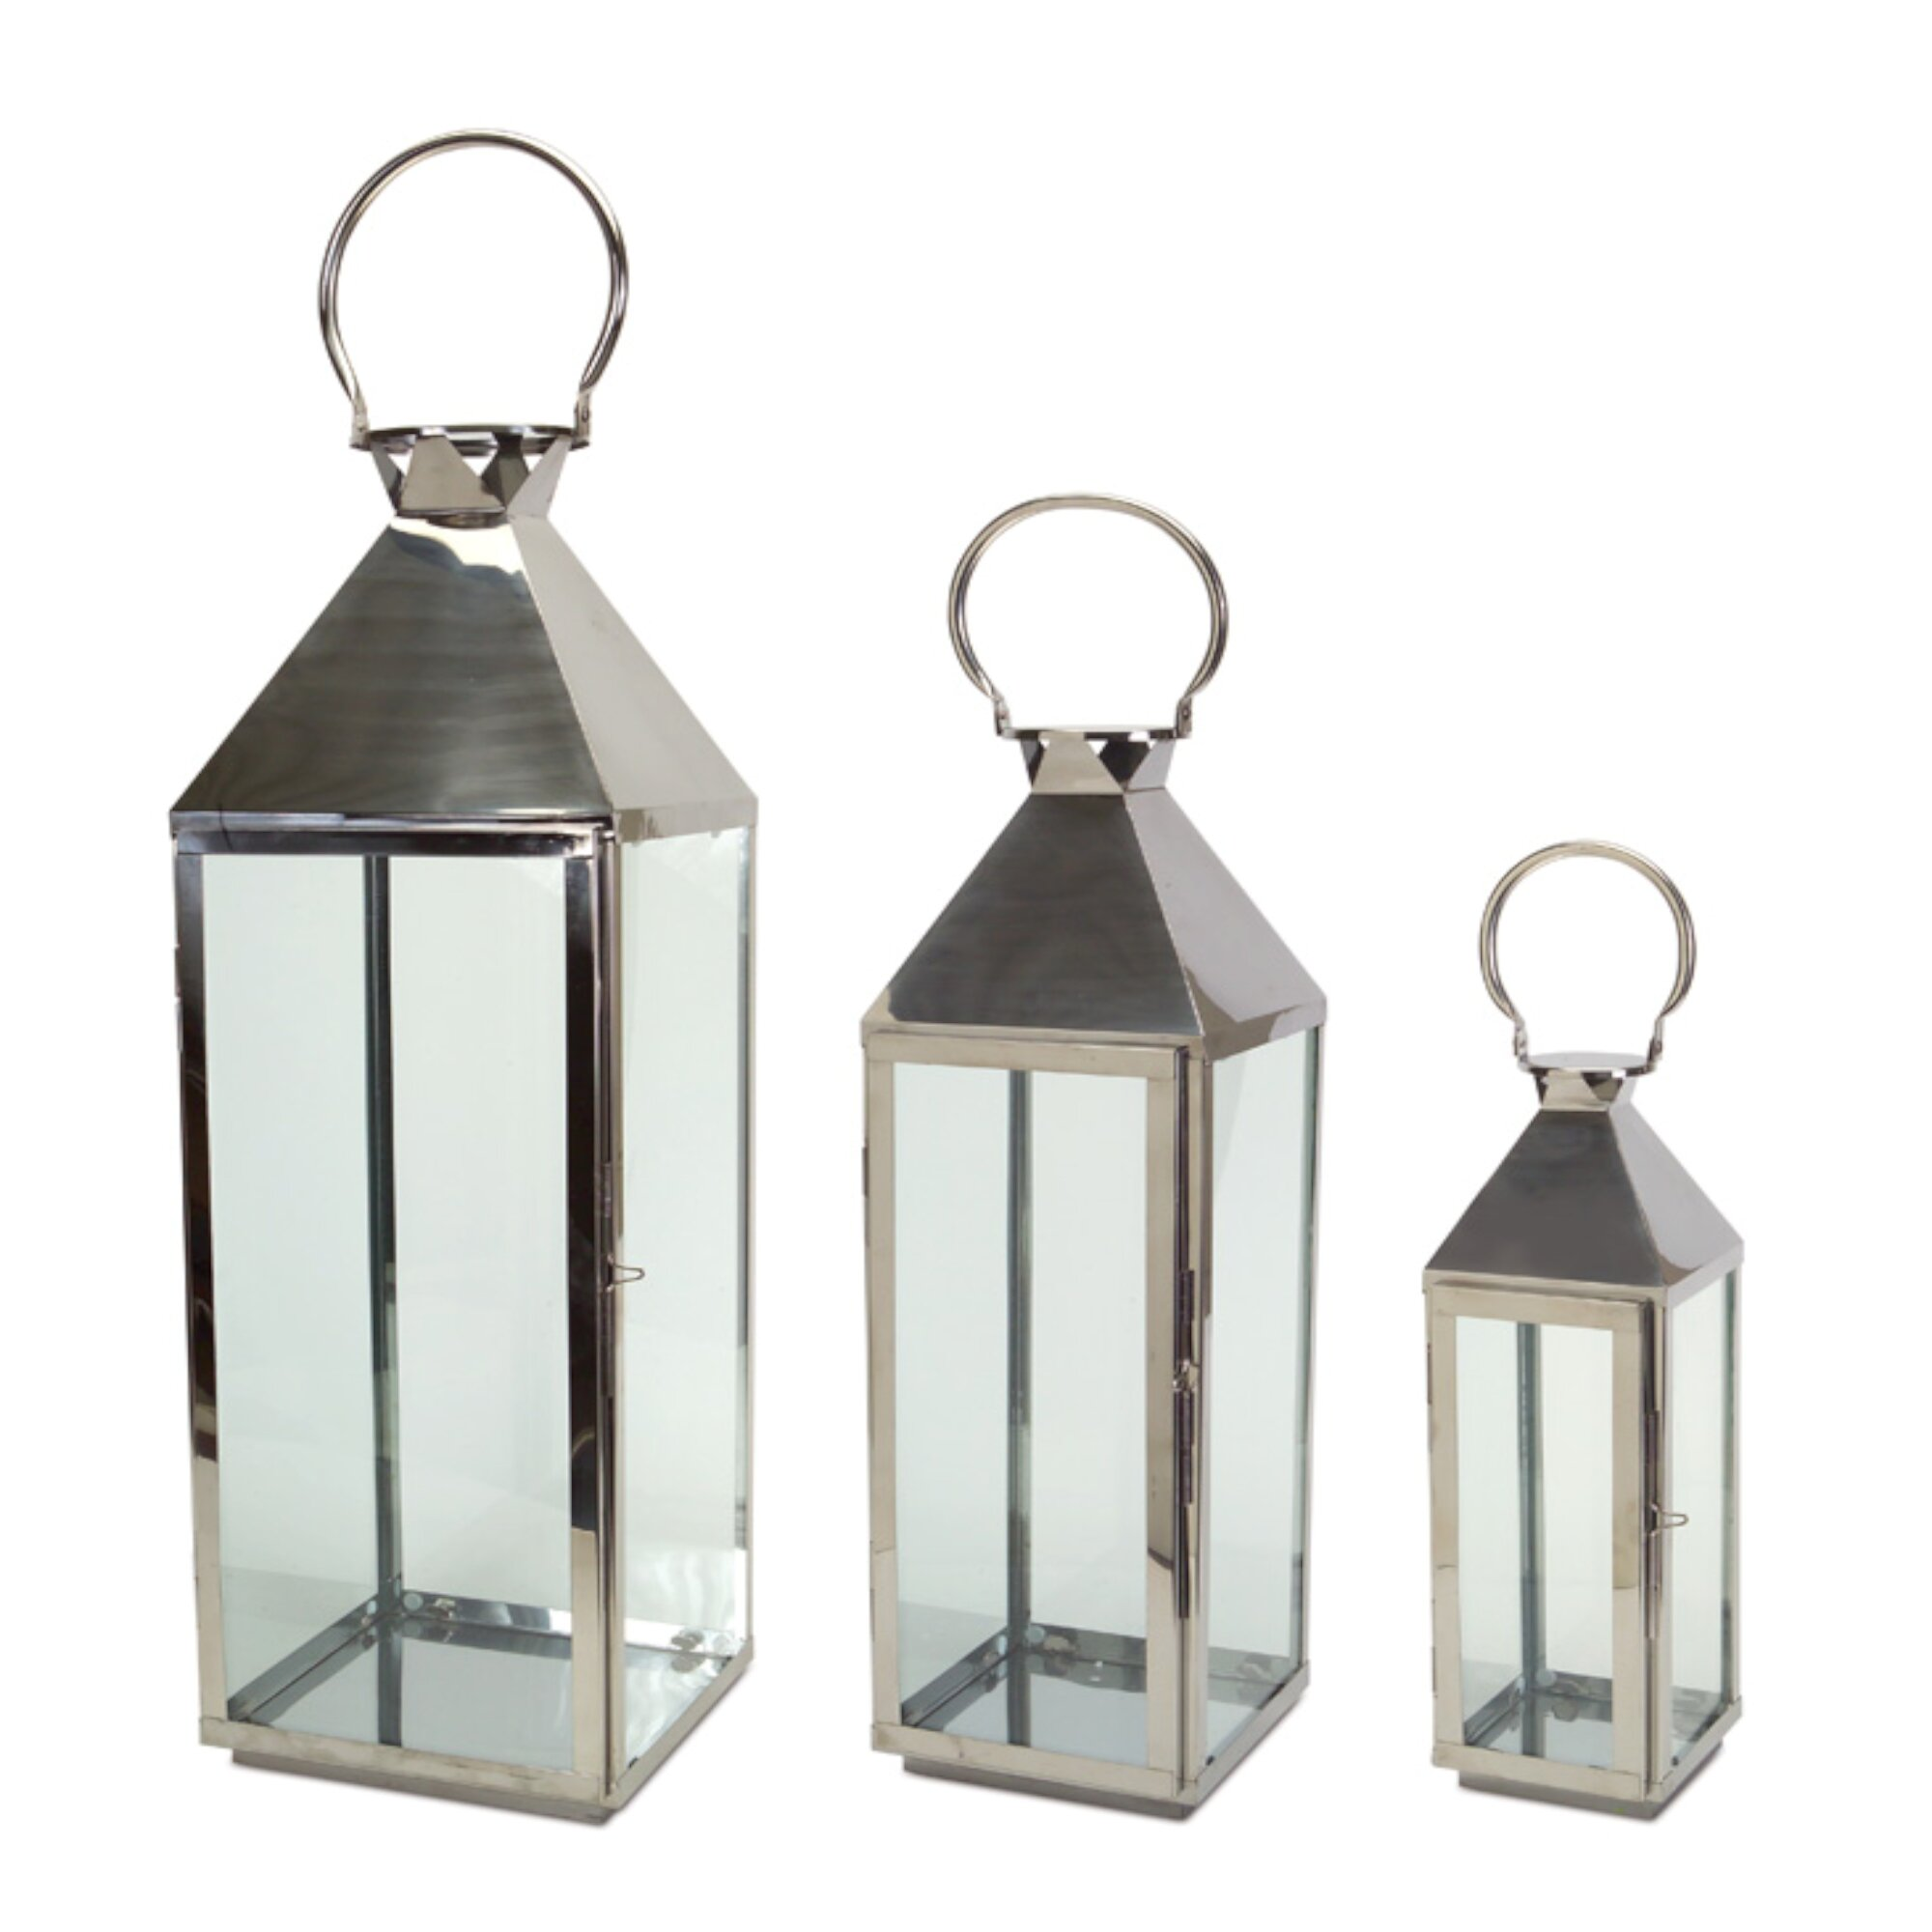 The Holiday Aisle 3 Piece Tall Metal